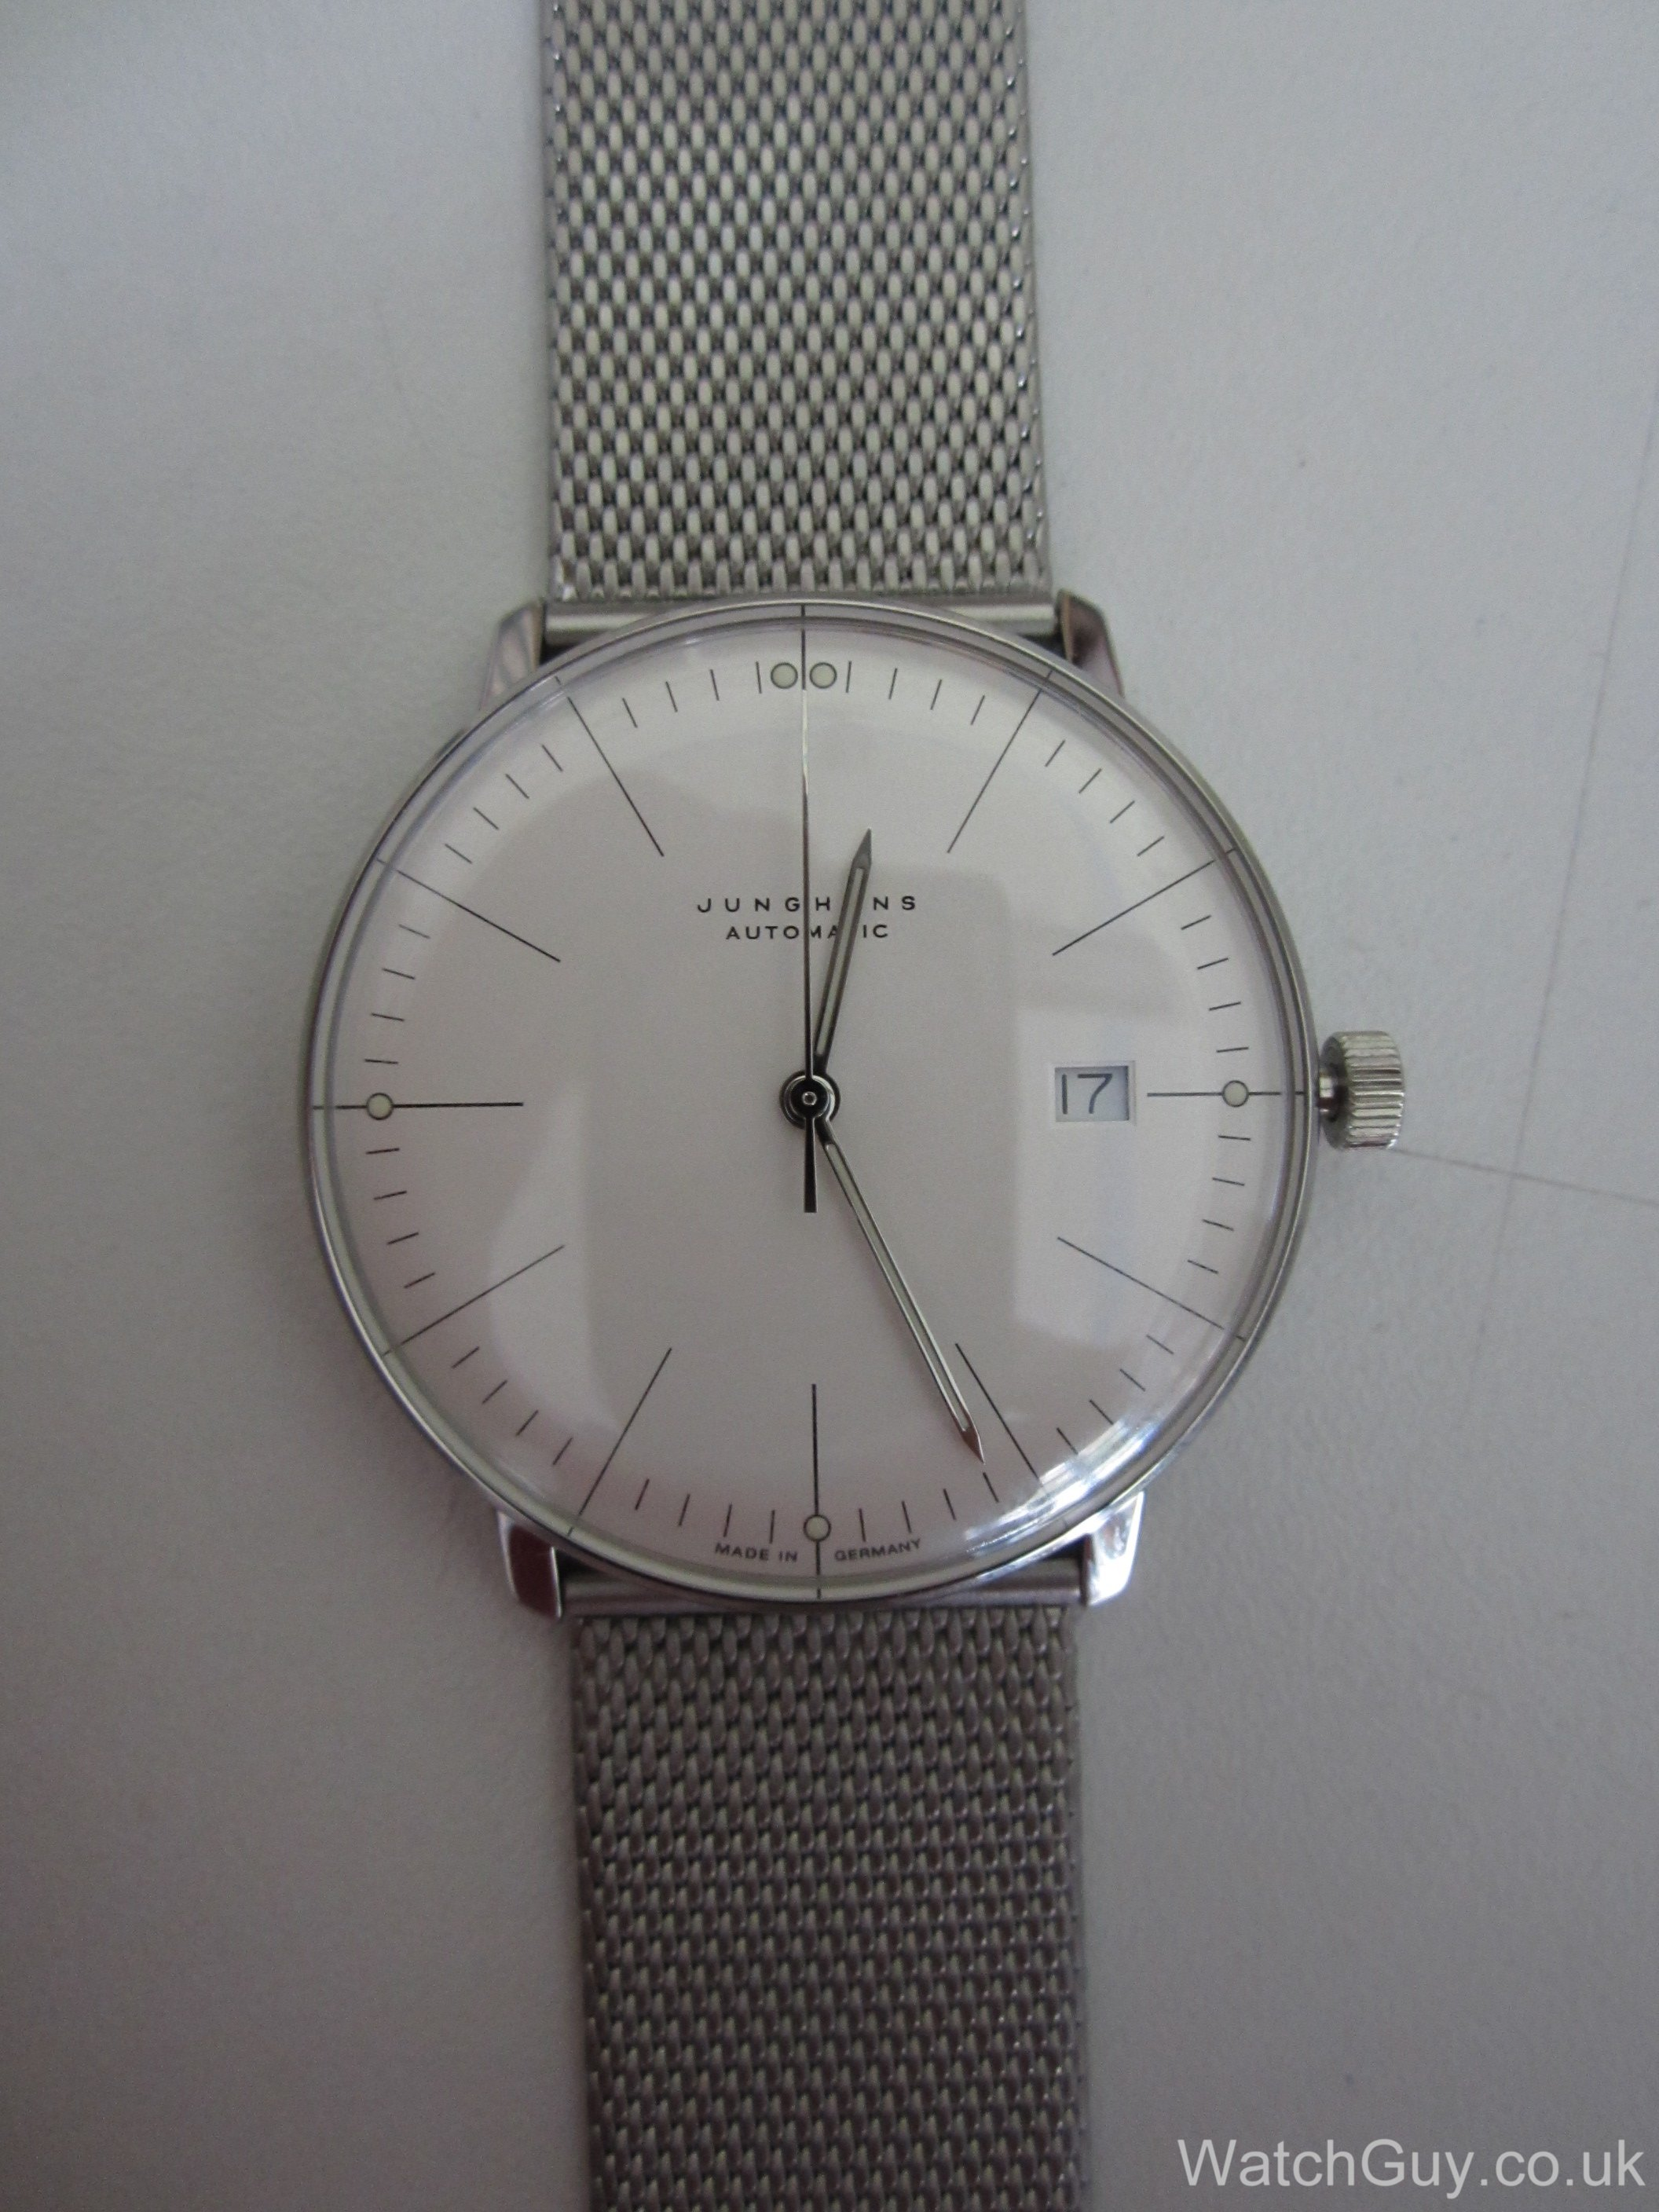 Max Bill Automatic Review Junghans Max Bill Automatic Date 027 4002 44 Calibre J800